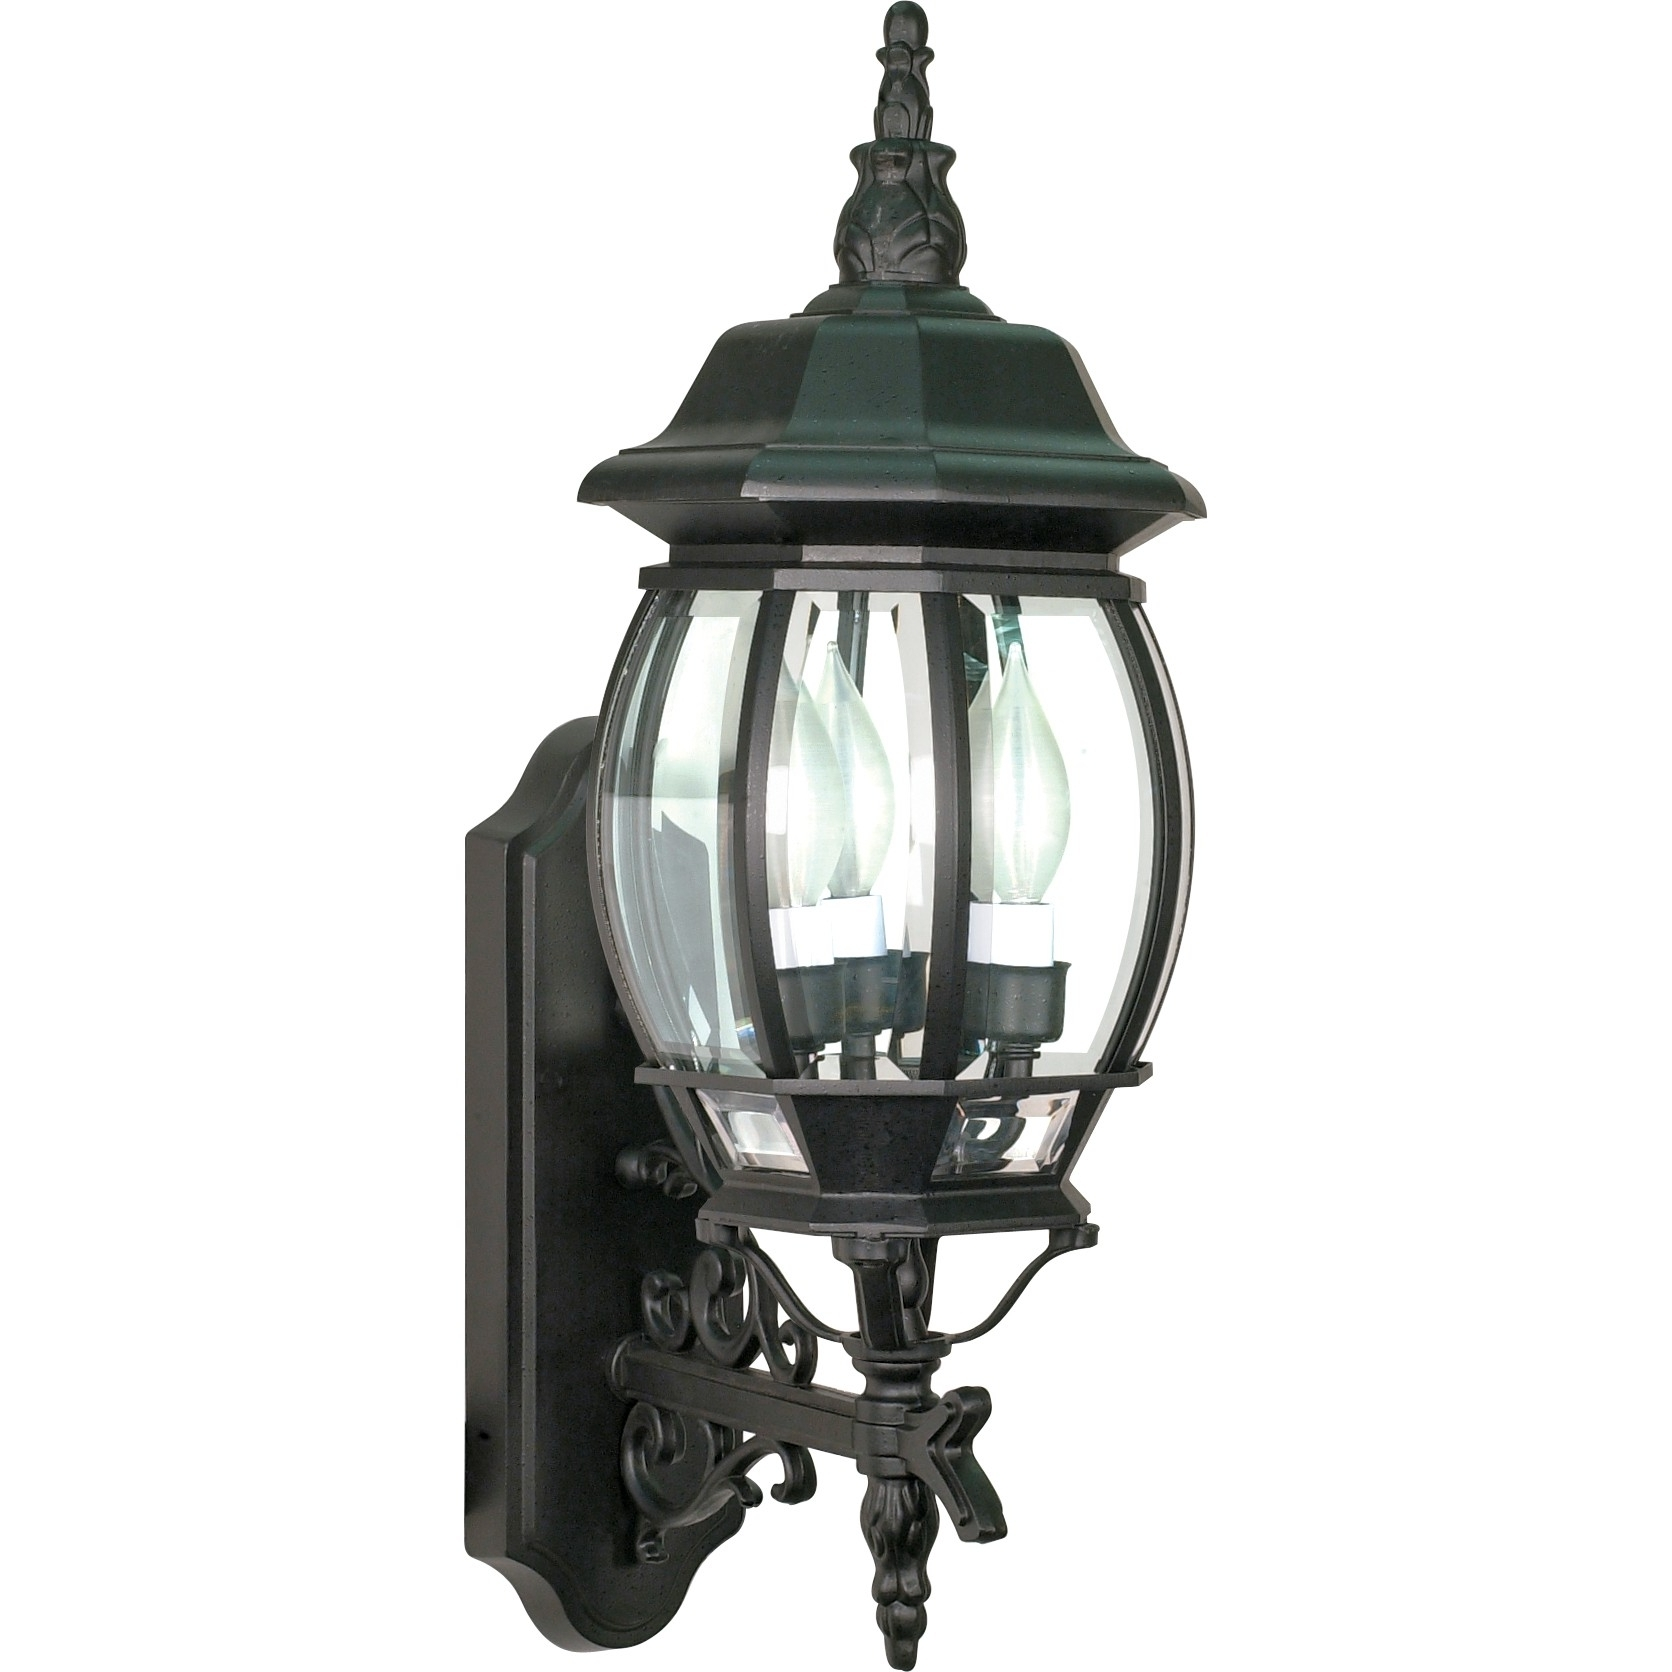 3 Light Large Outdoor Wall Lantern (View 3 of 20)